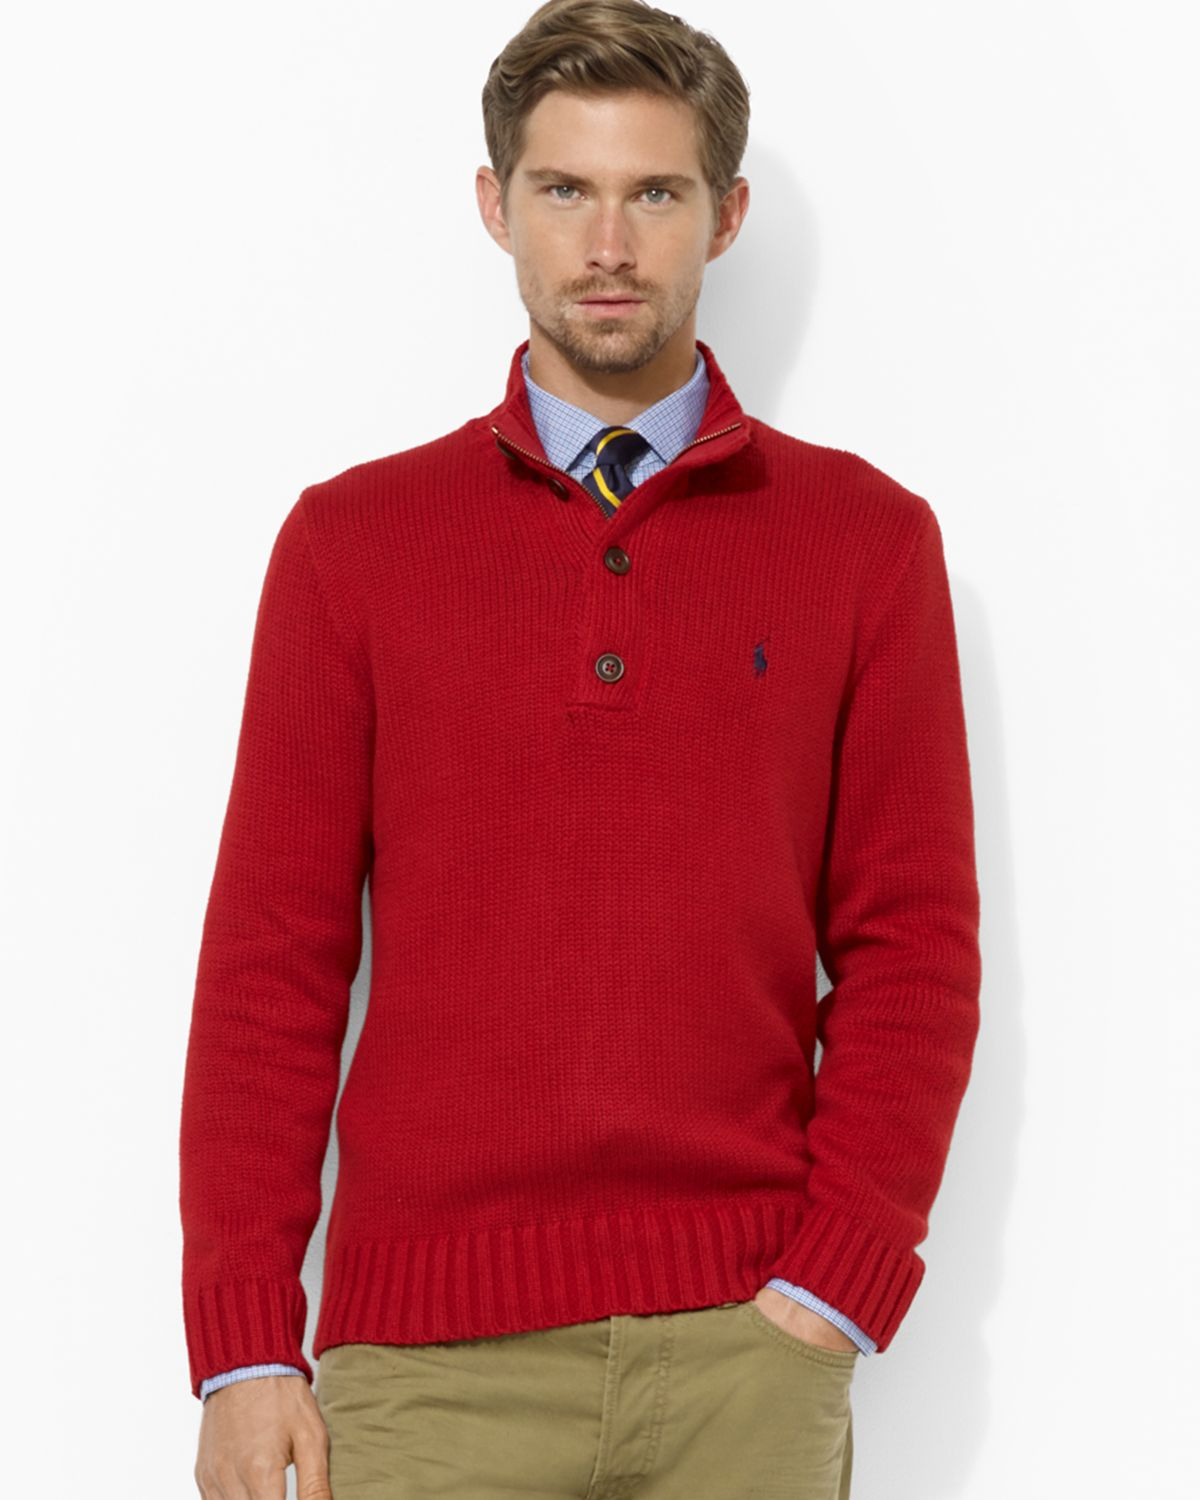 Aspesi classic cardigan ($) liked on Polyvore featuring men's fashion, men's clothing, men's sweaters, red, mens wool sweaters, mens red sweater, mens wool cardigan sweaters, mens red cardigan sweater and mens cardigan sweaters.